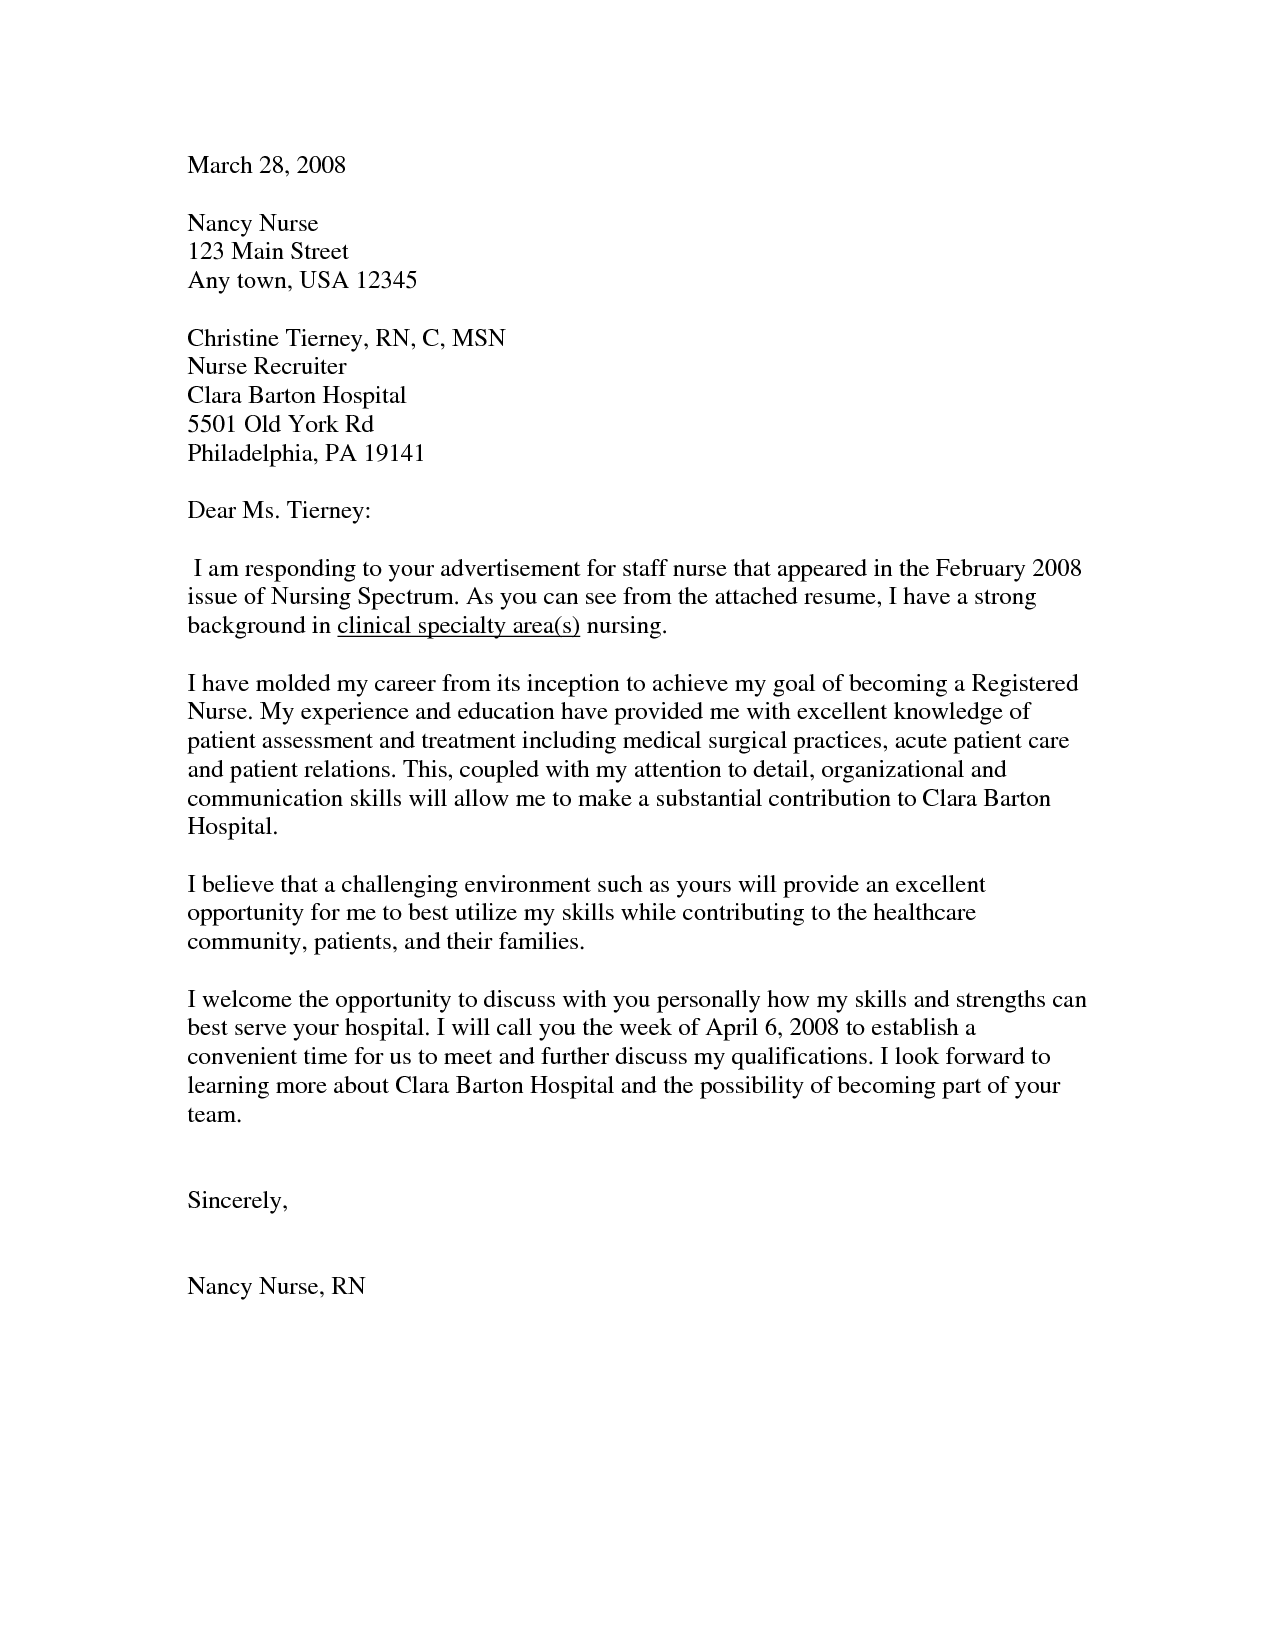 High Quality New Grad Nurse Practitioner Cover Letter. Free Nurse Practitioner Cover  Letter ...